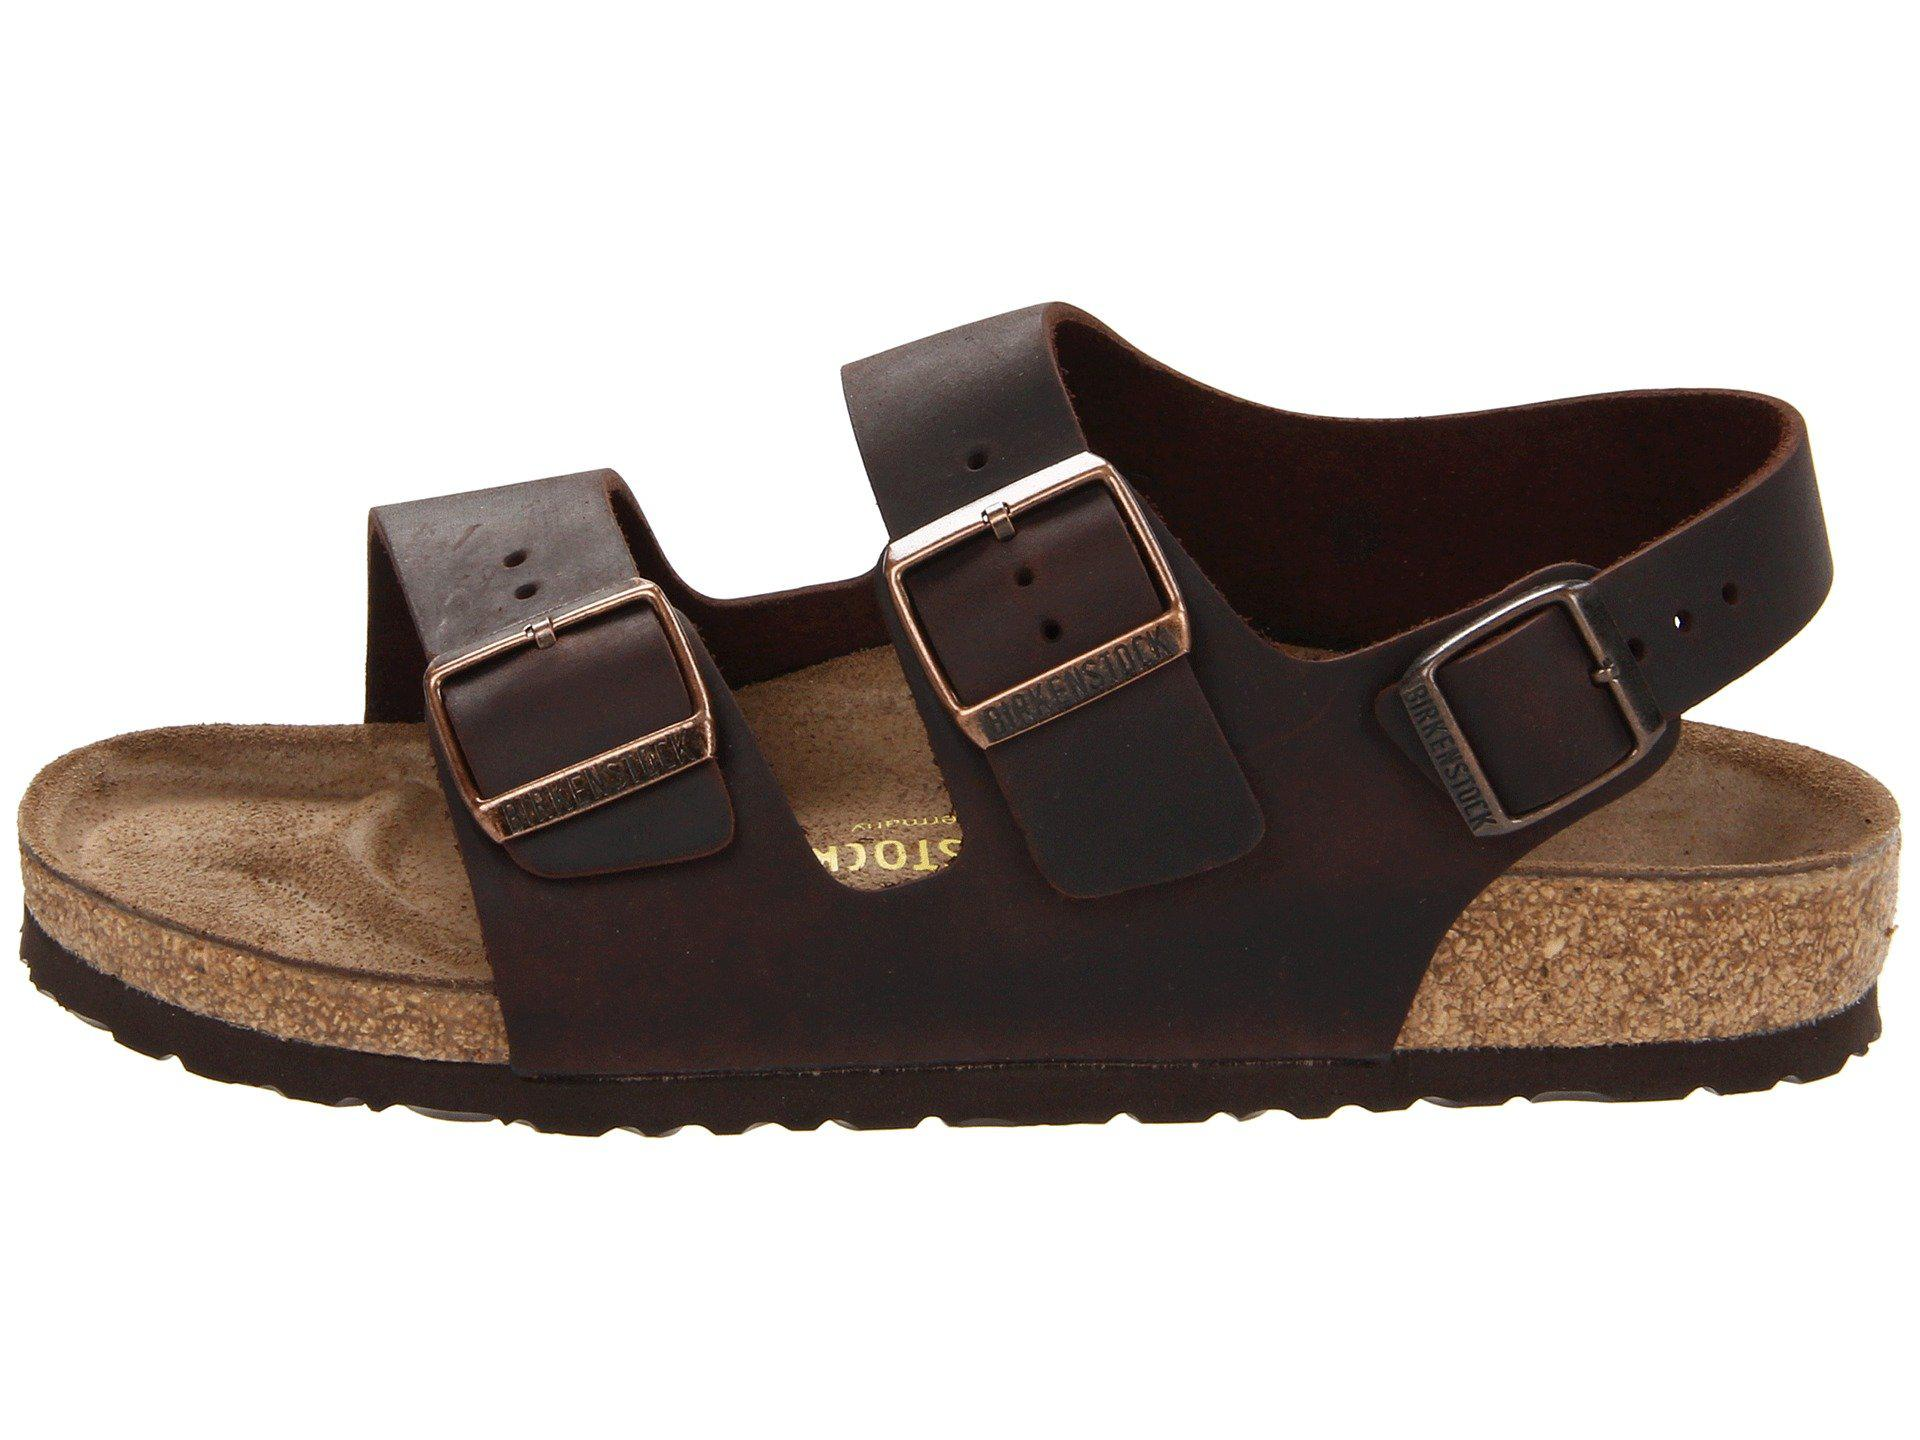 8654727345d3 Lyst - Birkenstock Milano - Oiled Leather (unisex) in Natural